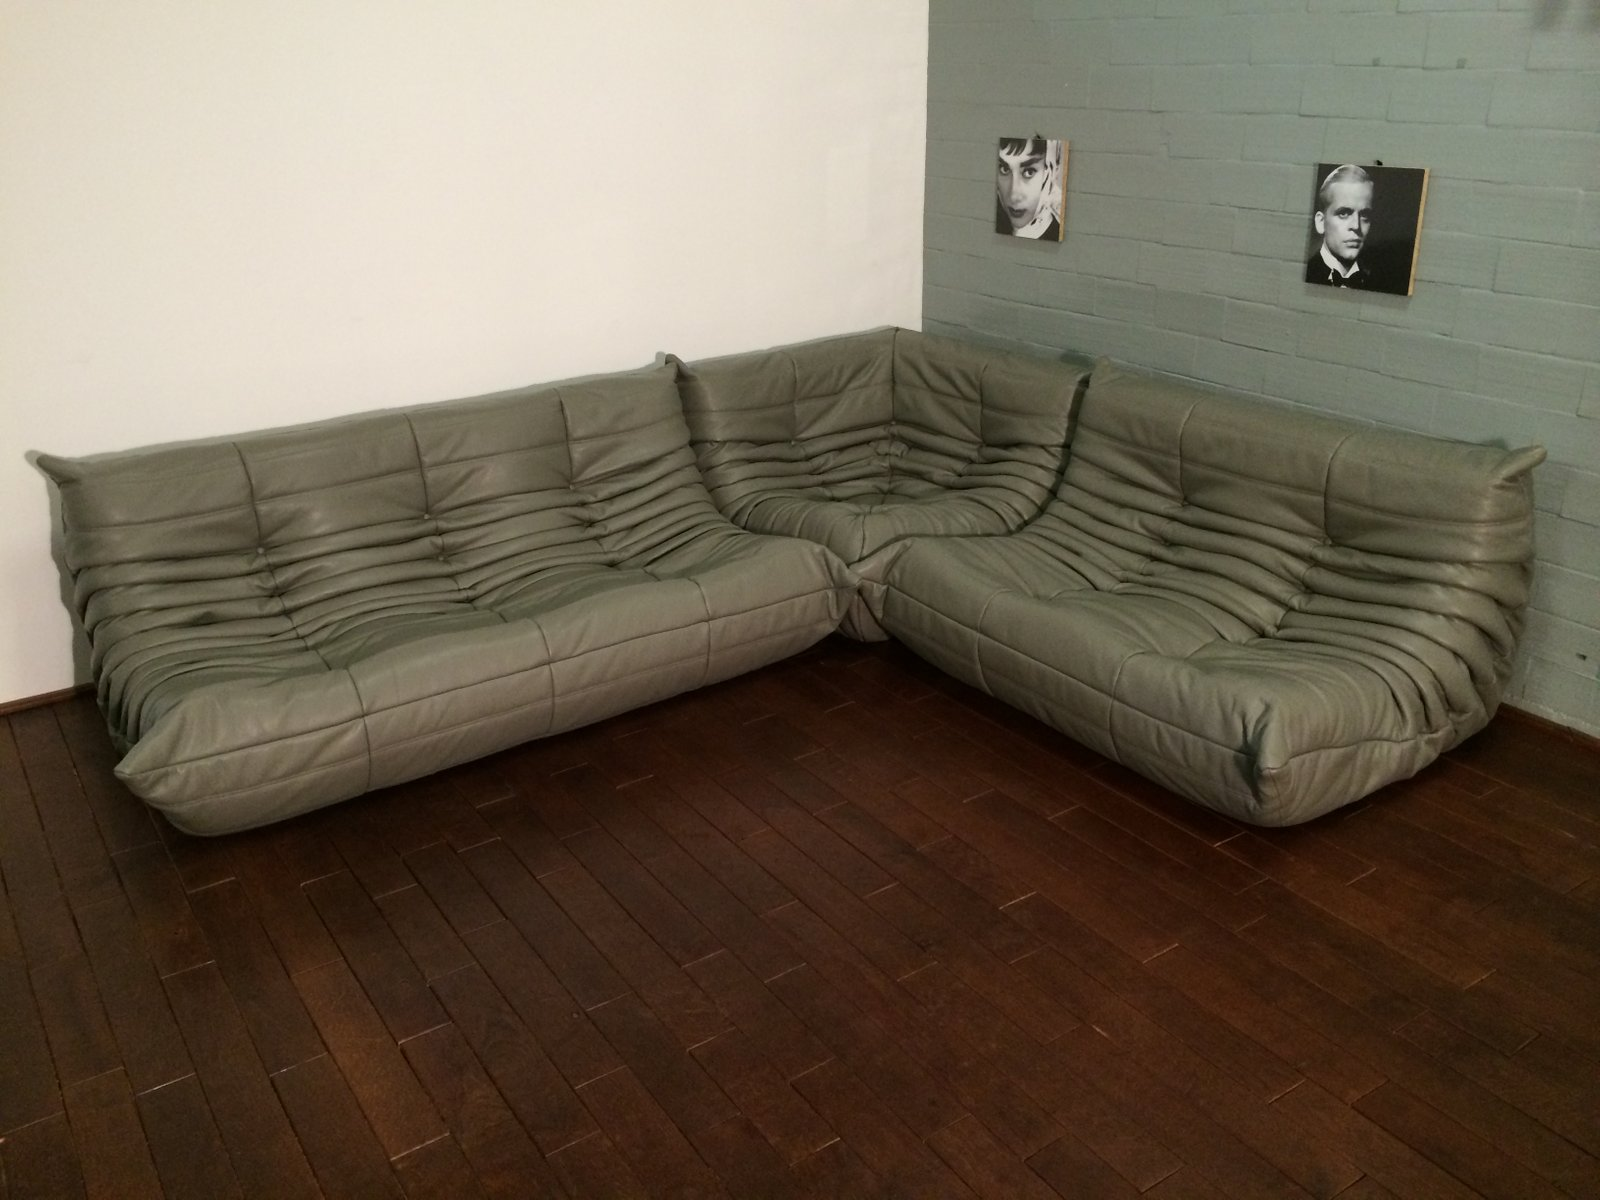 togo ledersofa set in dunkelgrau von michel ducaroy f r ligne roset 1974 bei pamono kaufen. Black Bedroom Furniture Sets. Home Design Ideas